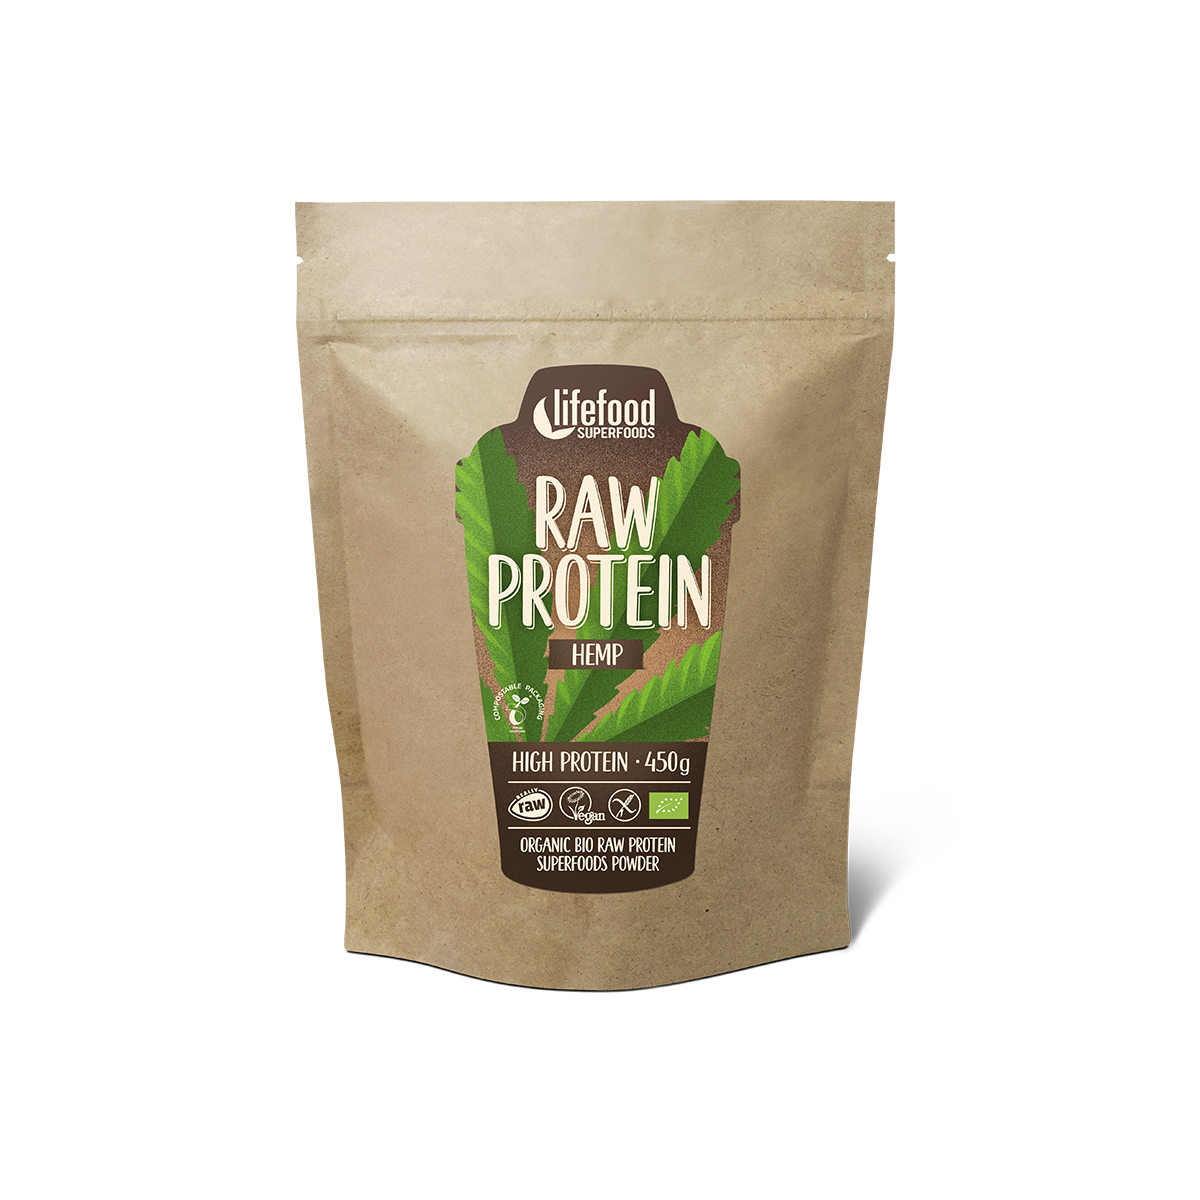 http://contao.lifefood.eu/tl_files/data/en/NEW products/protein superfood powders/hemp power/raw-vegan-protein-powder-hemp-power-450g.png